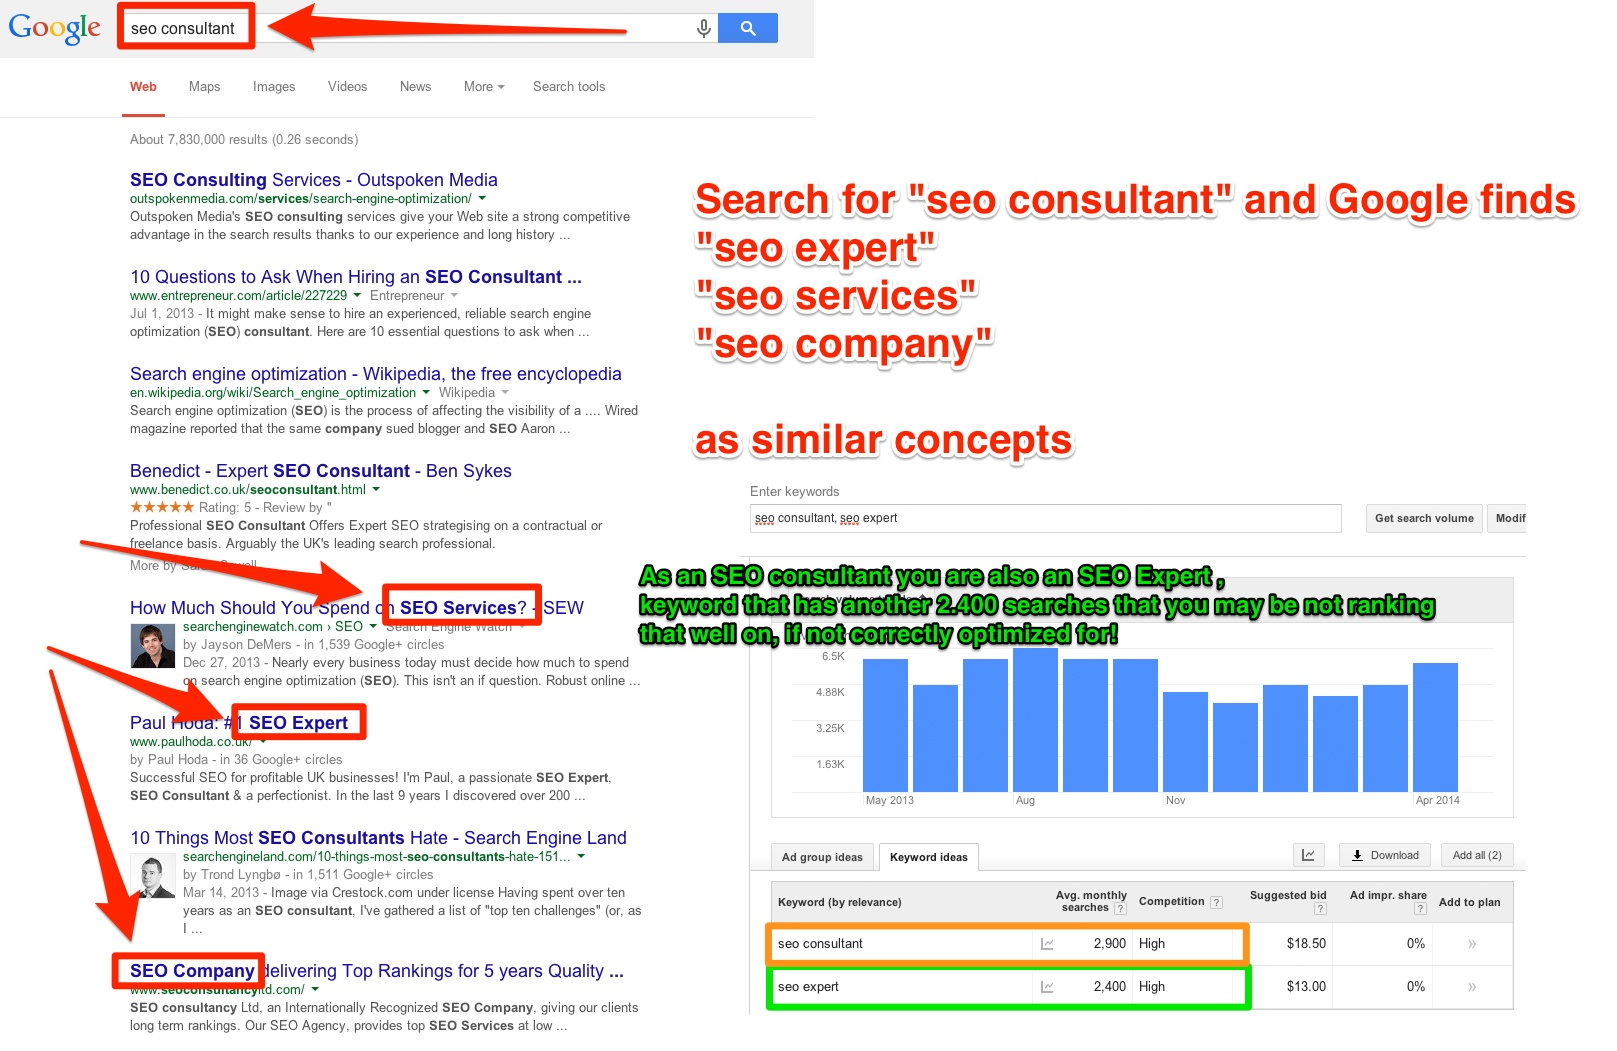 941 traffic increase exploiting the synonyms seo ranking technique seo consultant seo expert synonyms solutioingenieria Choice Image